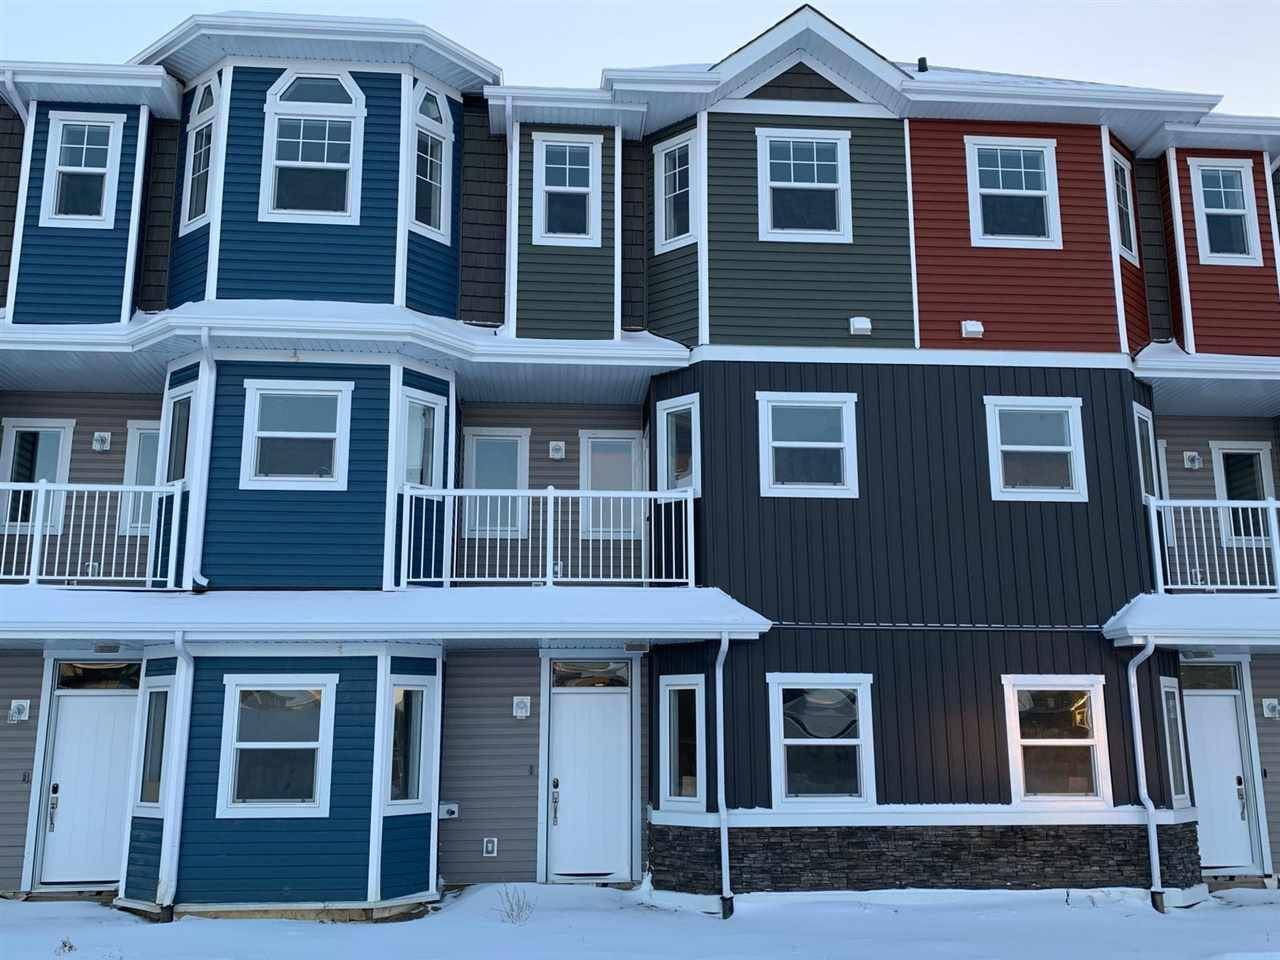 Townhouse for sale at 150 Everitt Dr N Unit 24 St. Albert Alberta - MLS: E4176988